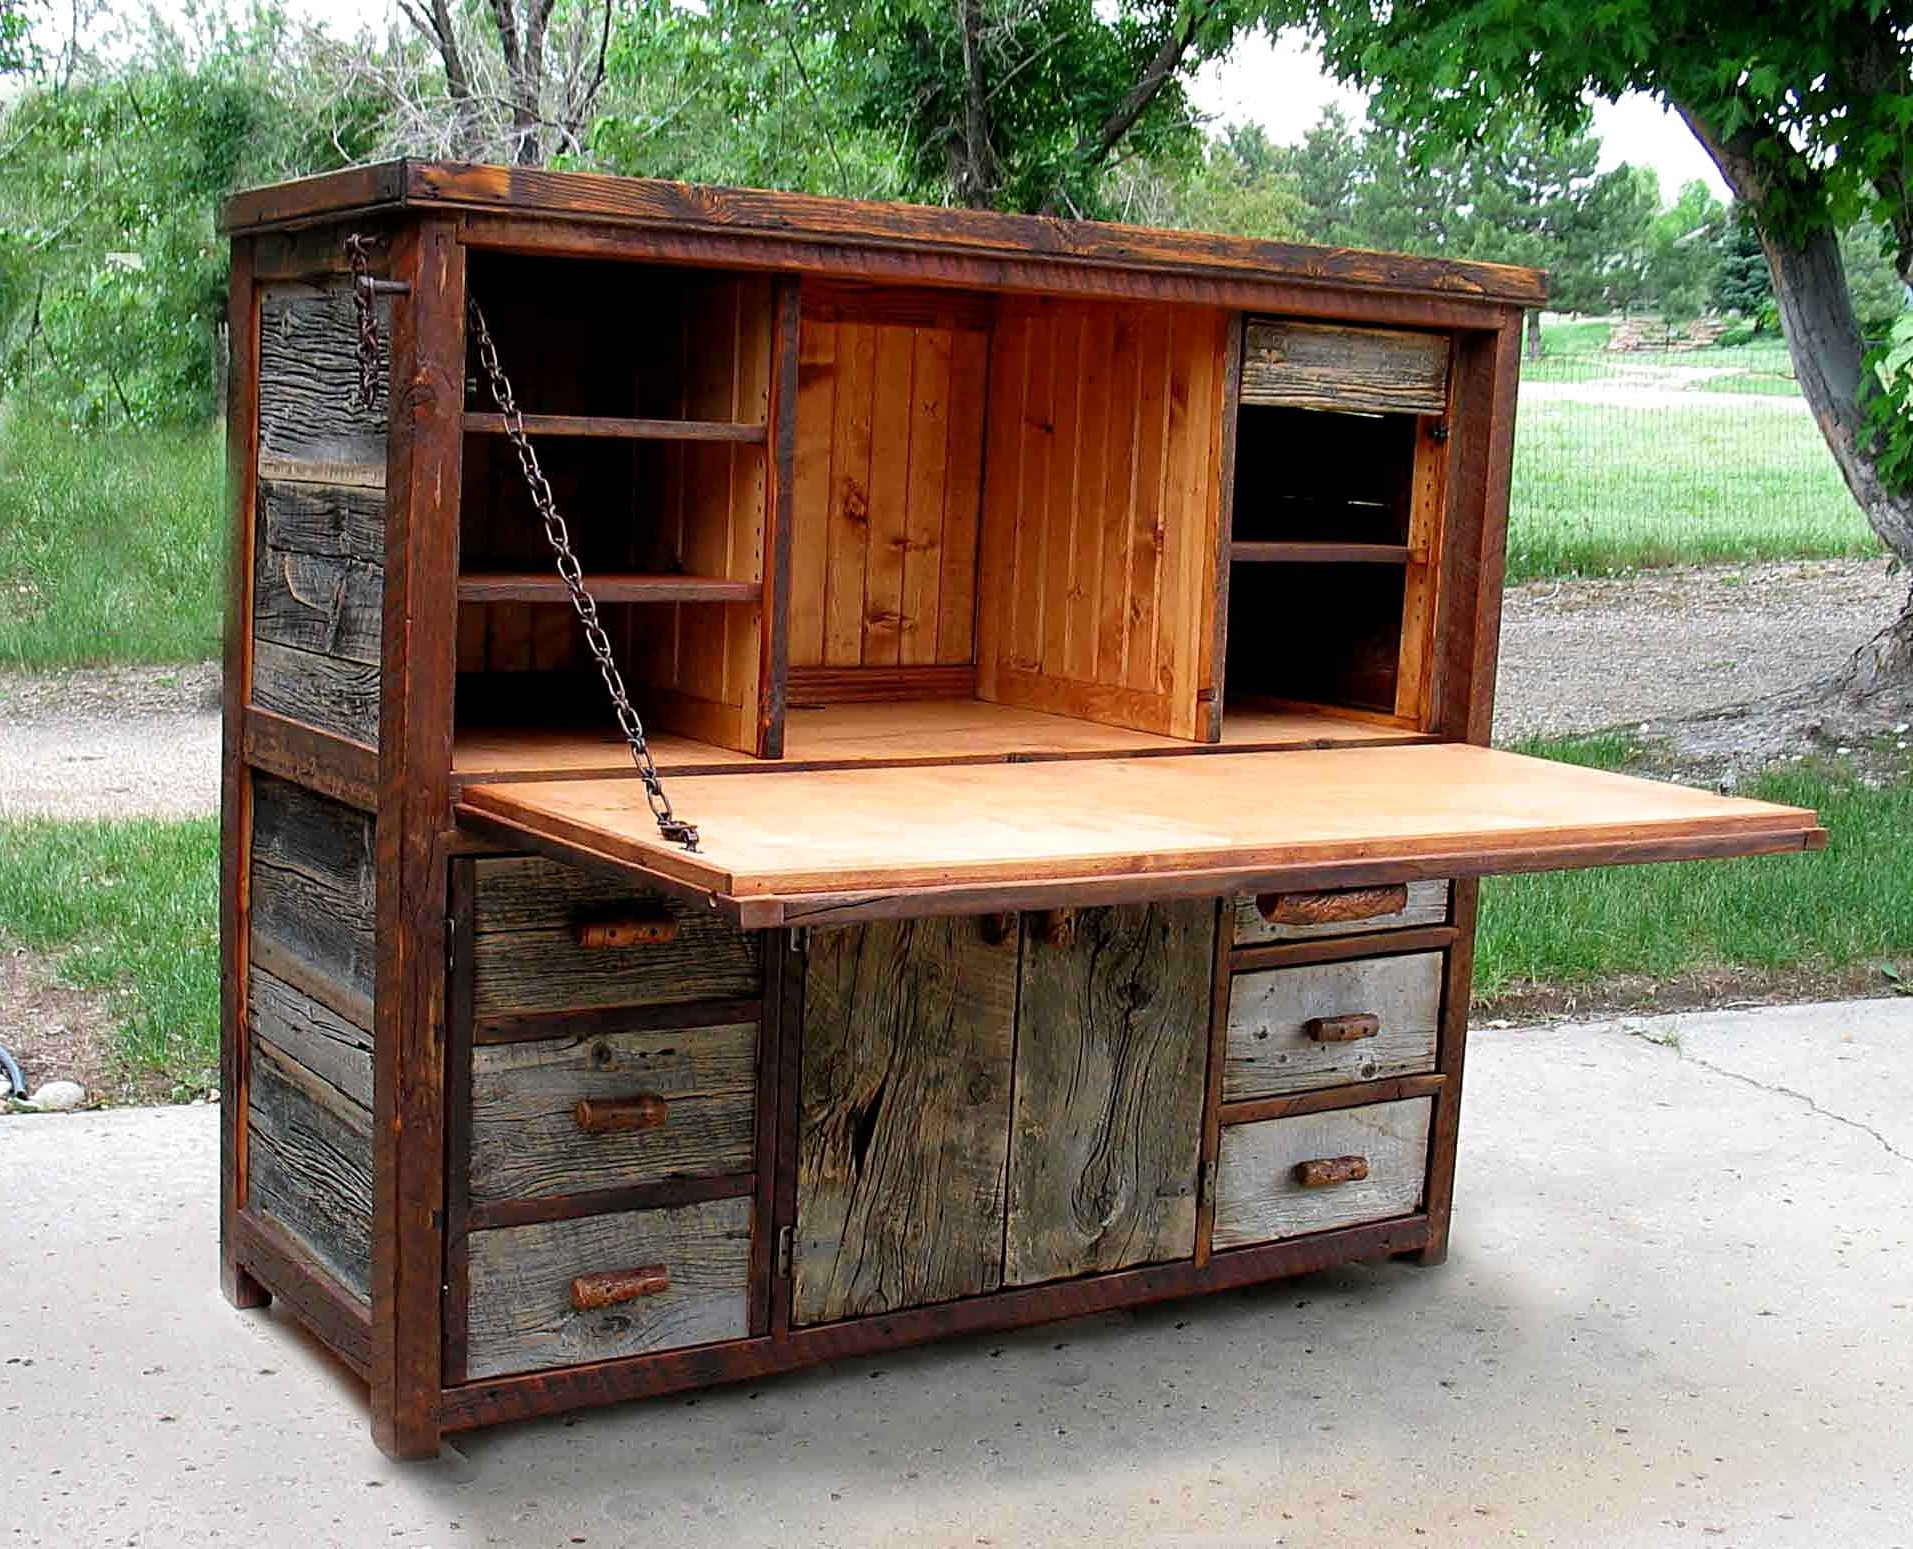 Rustic Barnwood Desks – Computer, Fold Down, And Seven Drawer Wood Inside Most Recently Released Rustic Computer Desks (View 12 of 20)